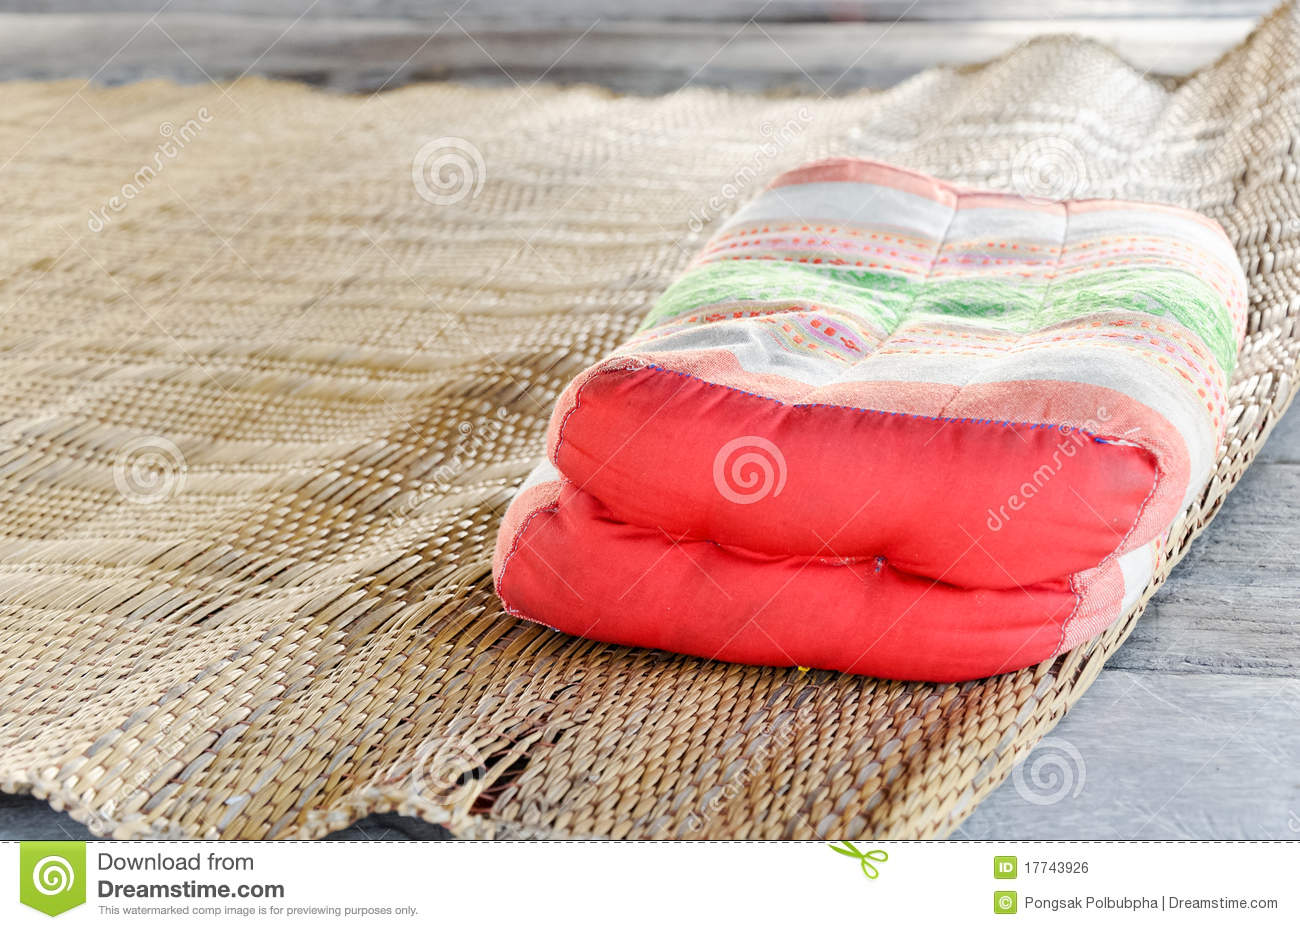 Traditional Thai Pillow : Traditional Thai Pillow Royalty Free Stock Image - Image: 17743926